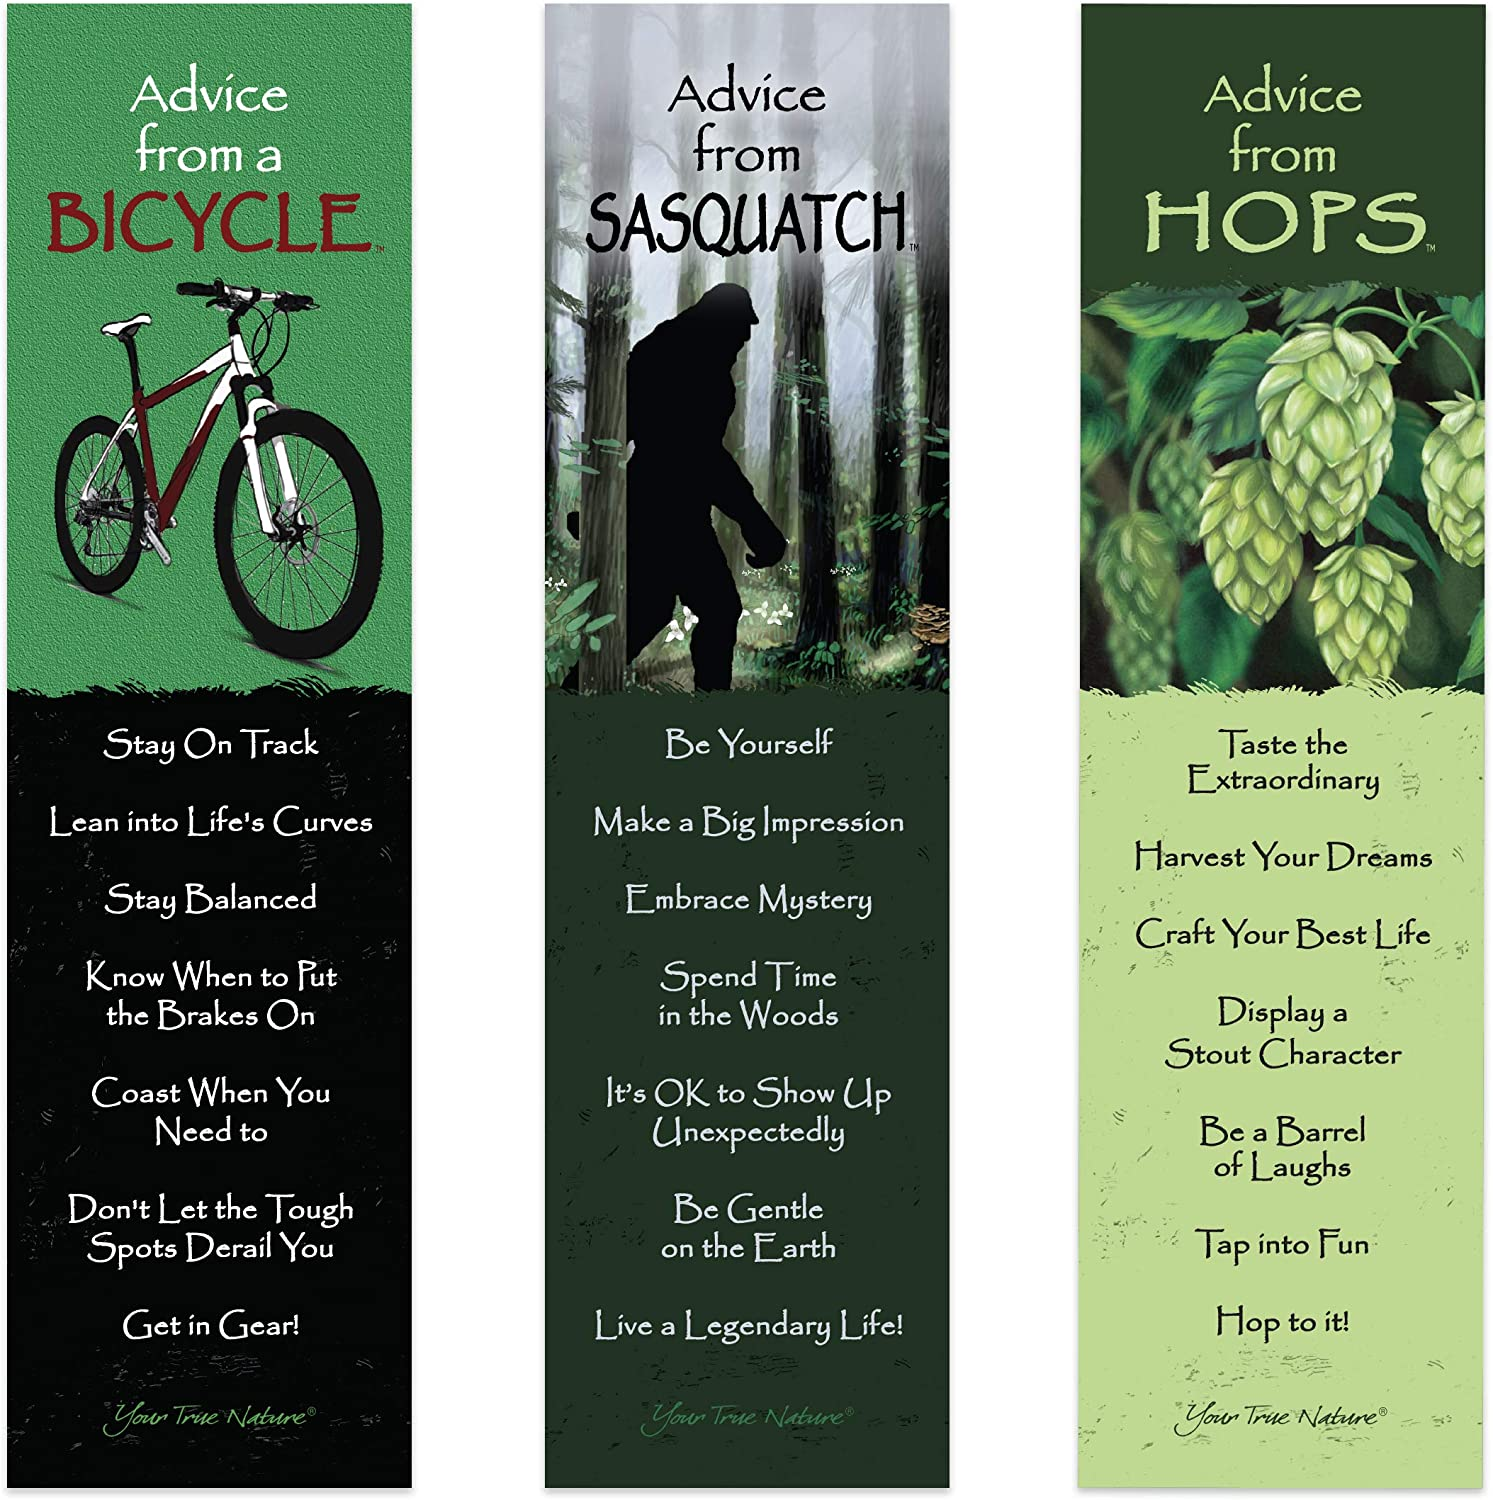 Advice from Nature 3 Bookmark Hipster Set - Bicycle, Hops, Sasquatch by Your True Nature